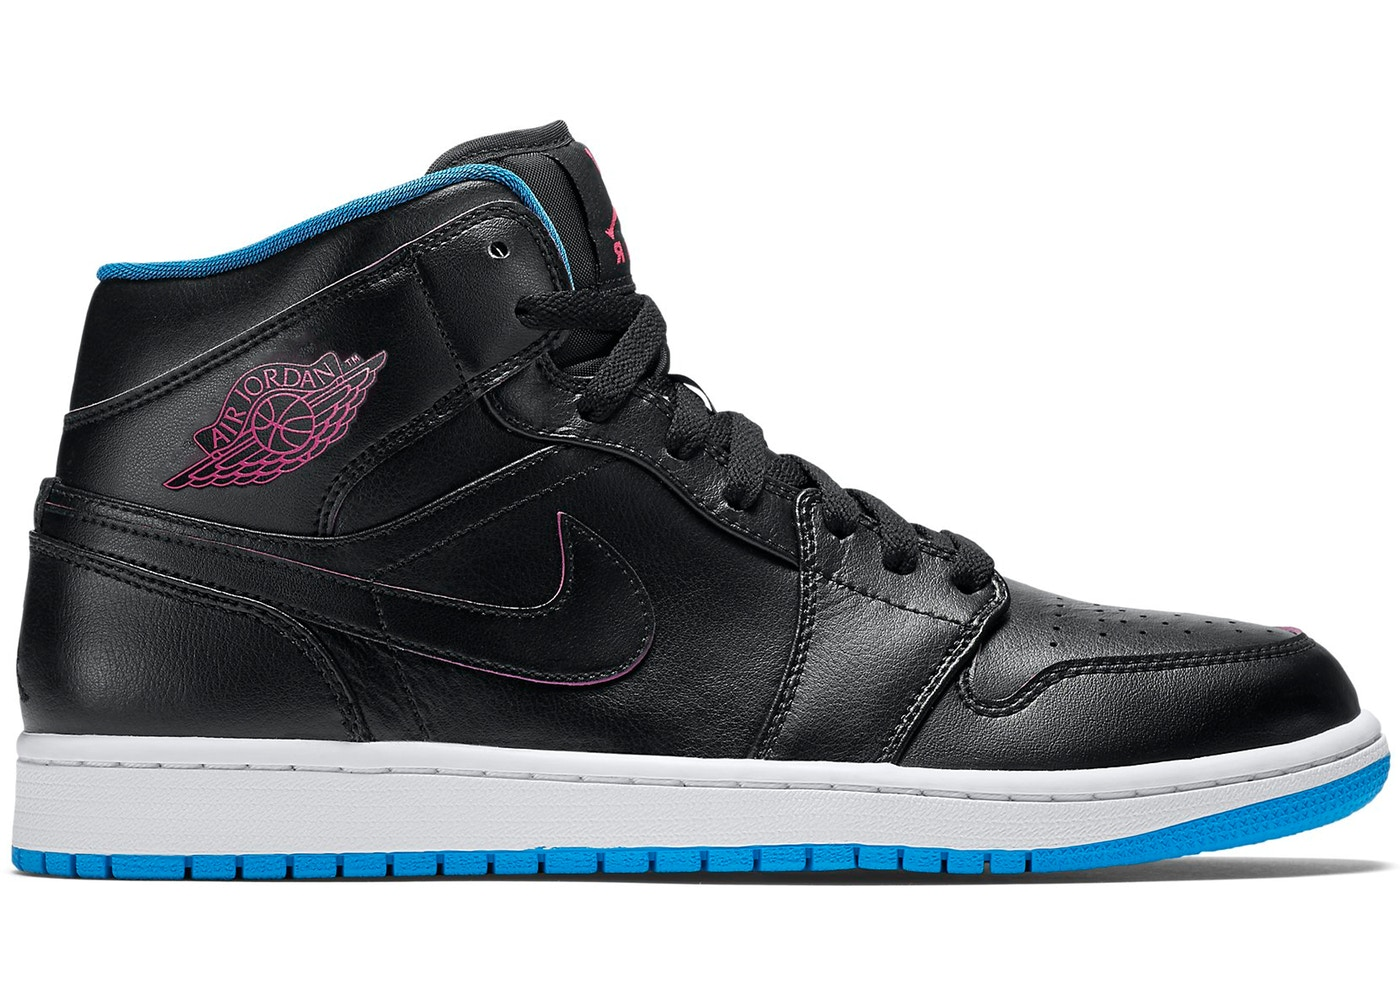 56371793e81 Sell. or Ask. Size  9.5. View All Bids. Jordan 1 Retro Mid ...